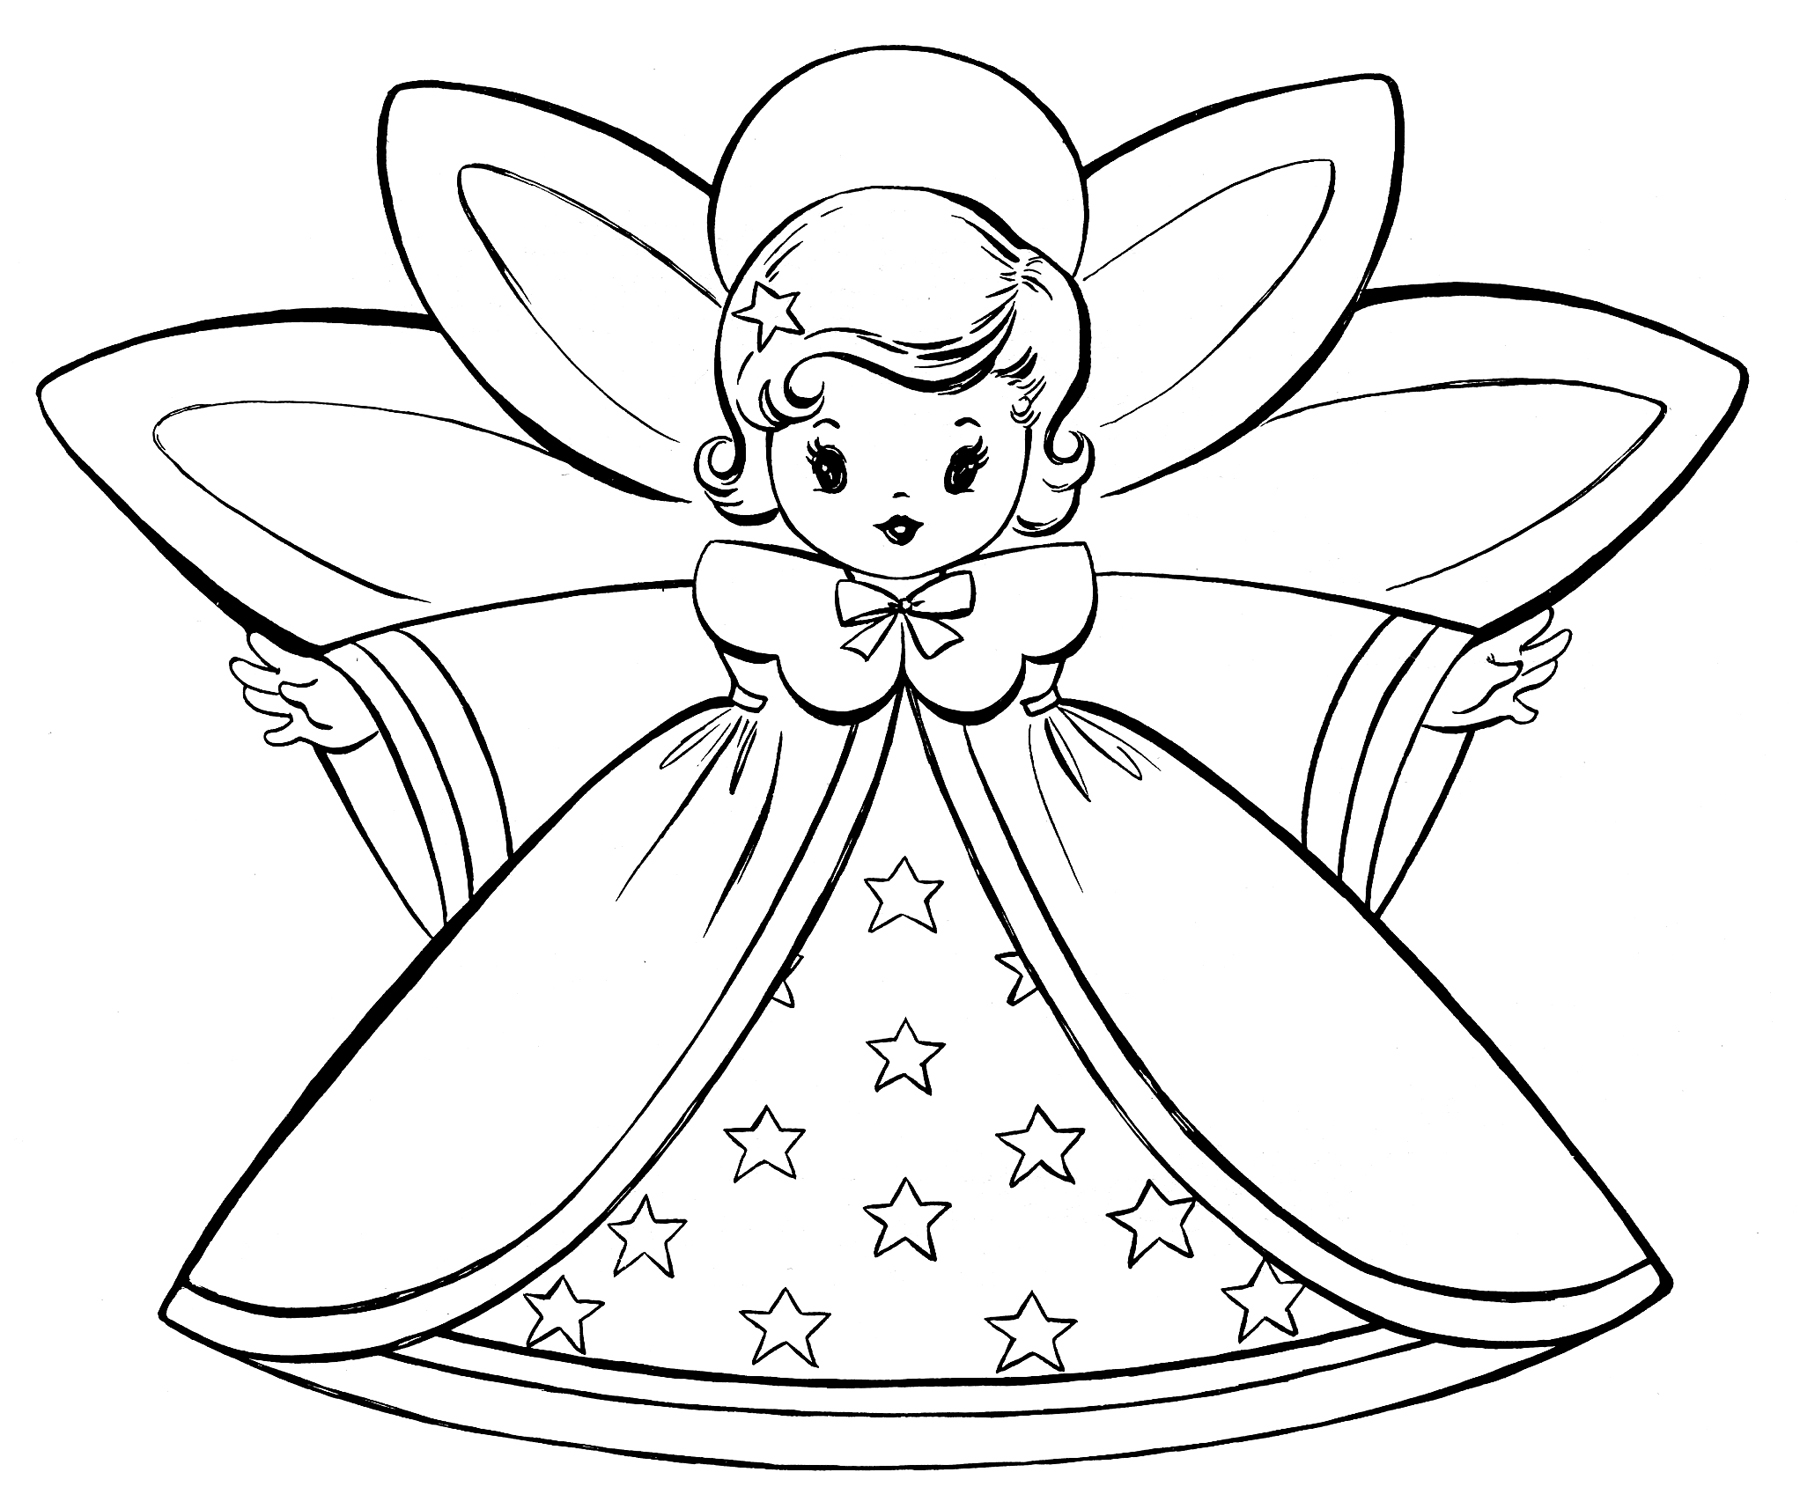 Free coloring pages - Free Christmas Coloring Pages